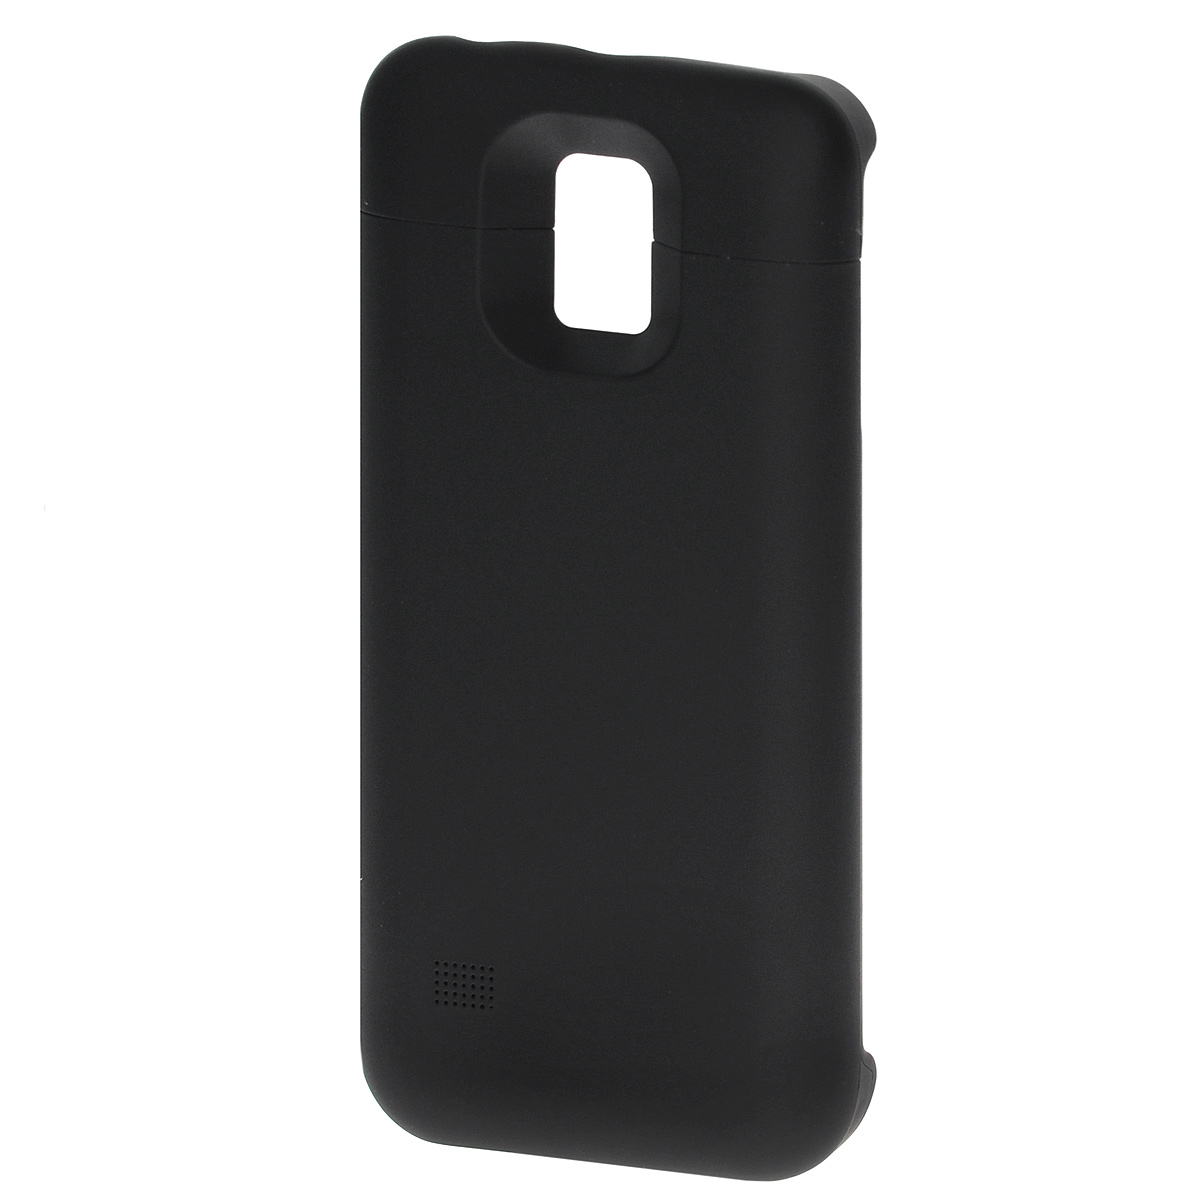 EXEQ HelpinG-SC09 чехол-аккумулятор для Samsung Galaxy S5 mini, Black (3300 мАч, клип-кейс) exeq helping sf02 чехол аккумулятор для samsung galaxy s3 mini white 1900 мач флип кейс